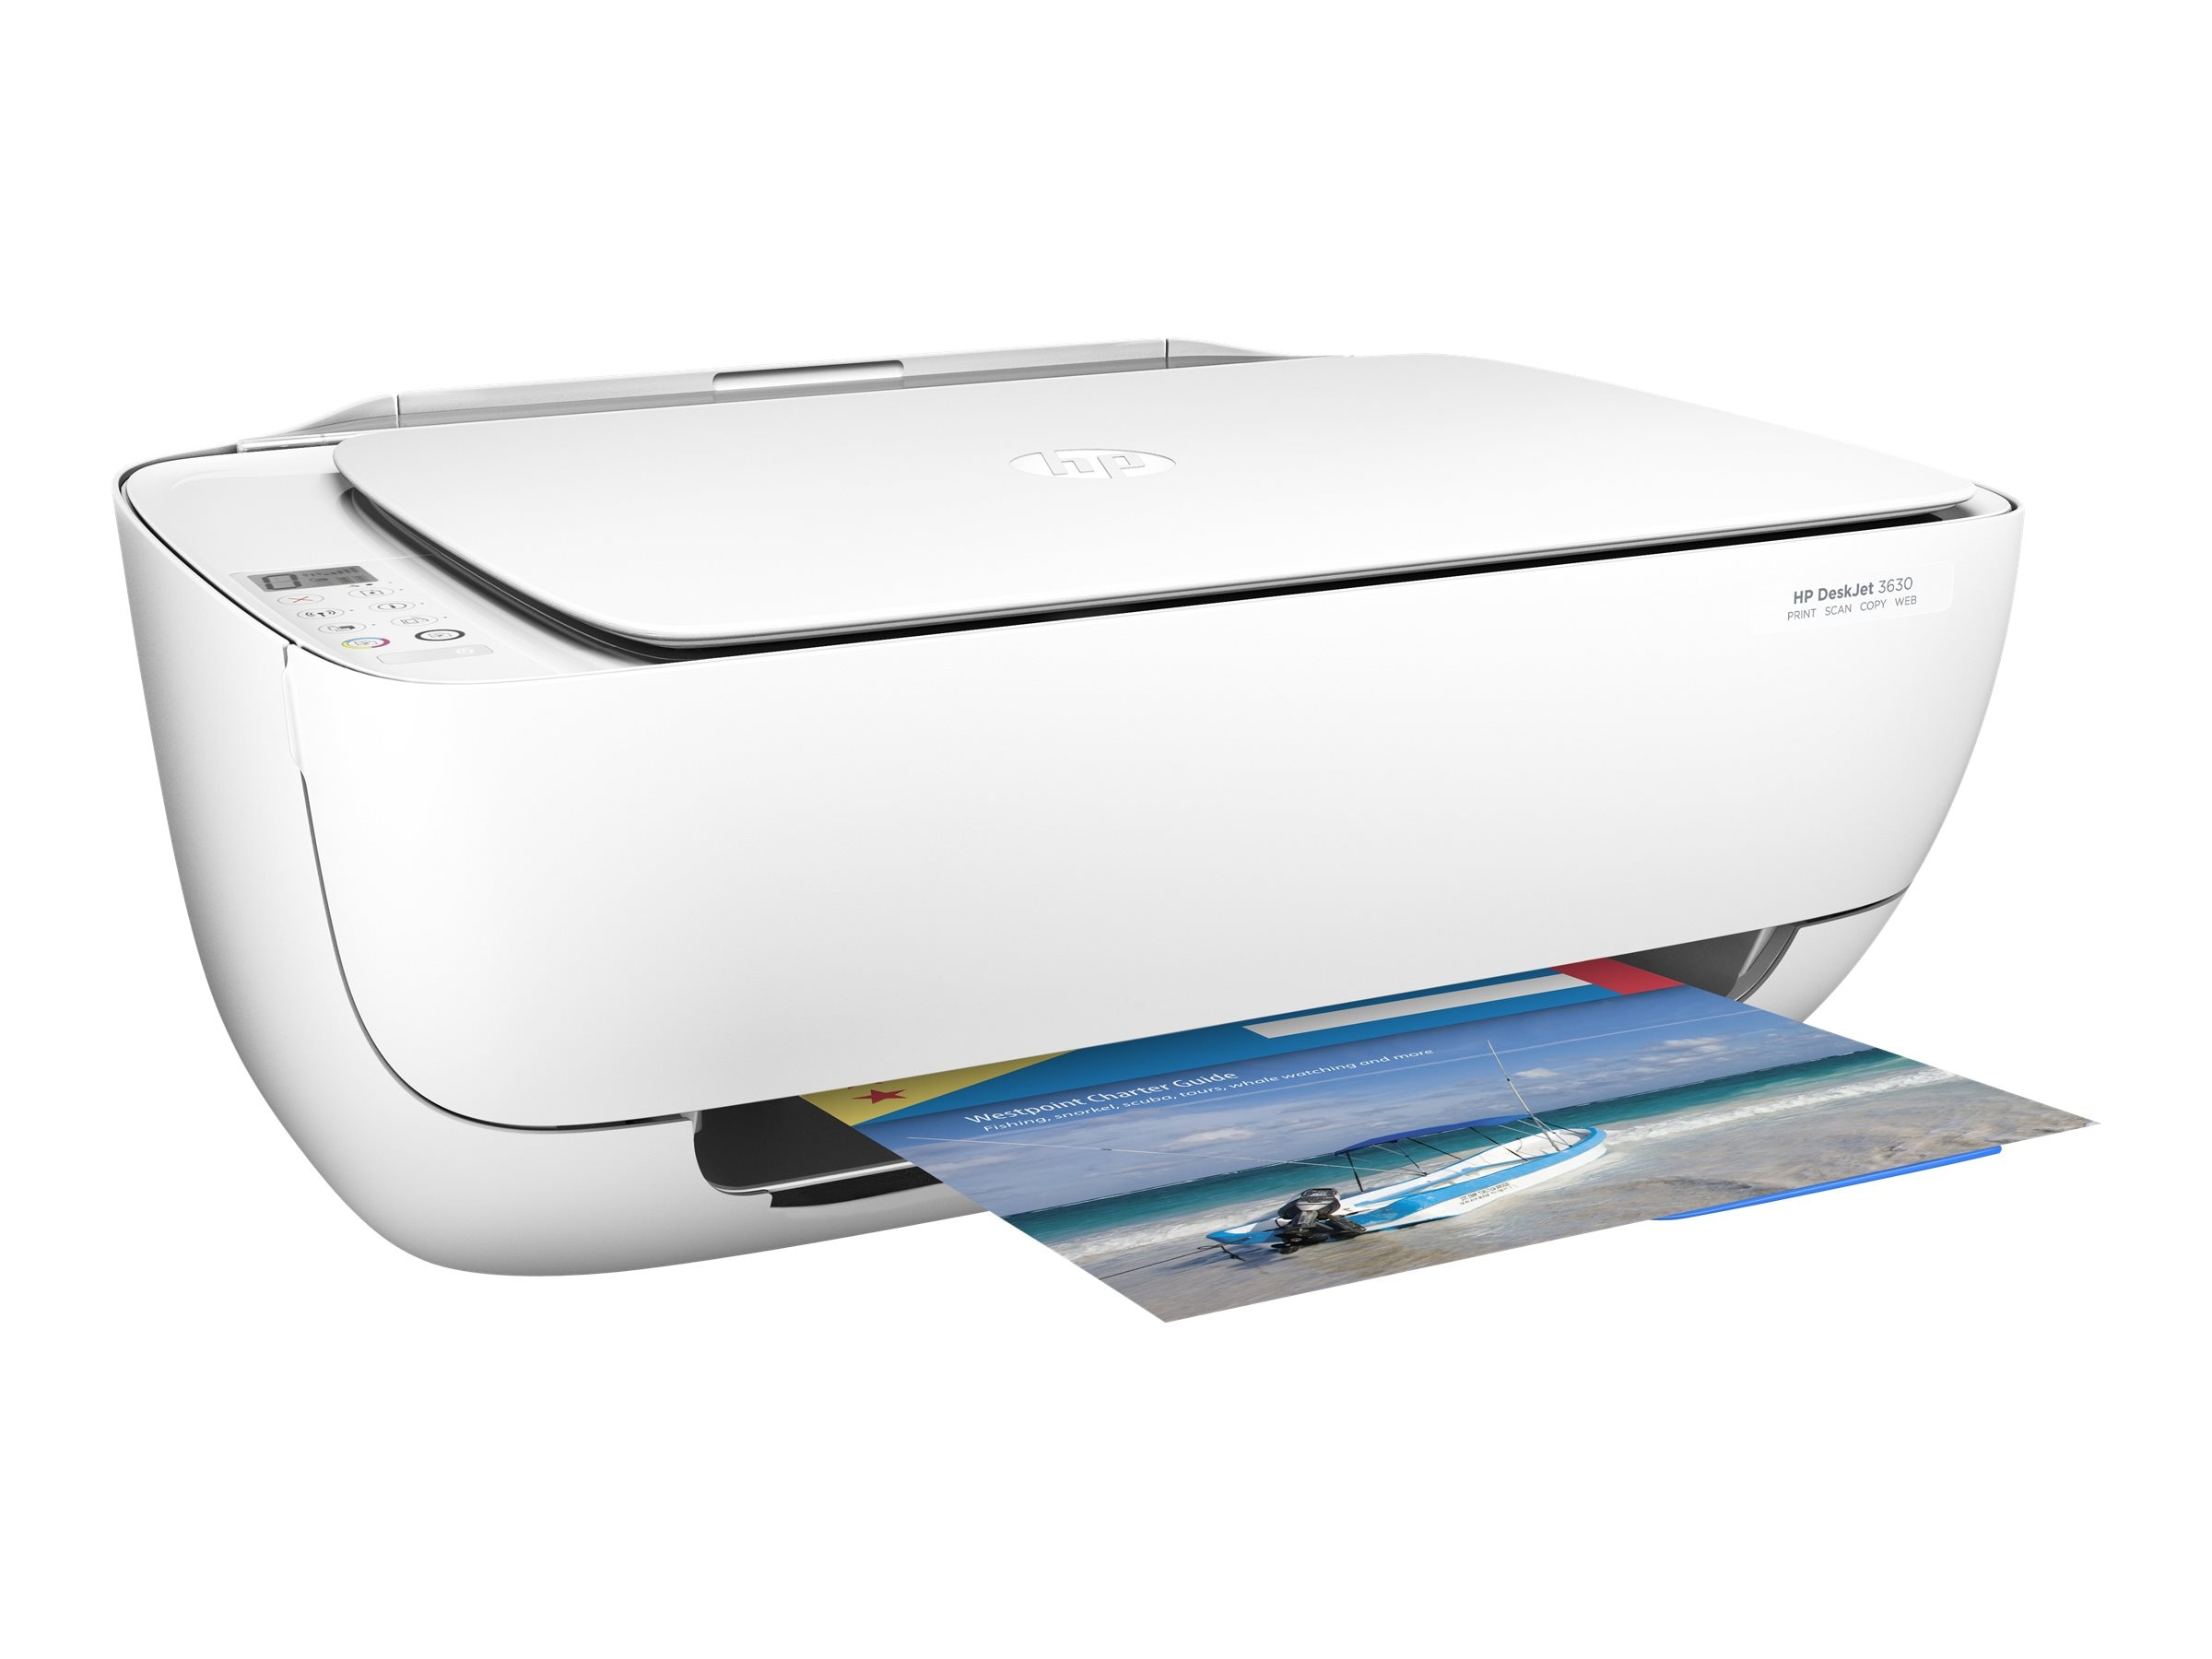 HP DeskJet 3630 All-in-One Printer, F5S57A#B1H